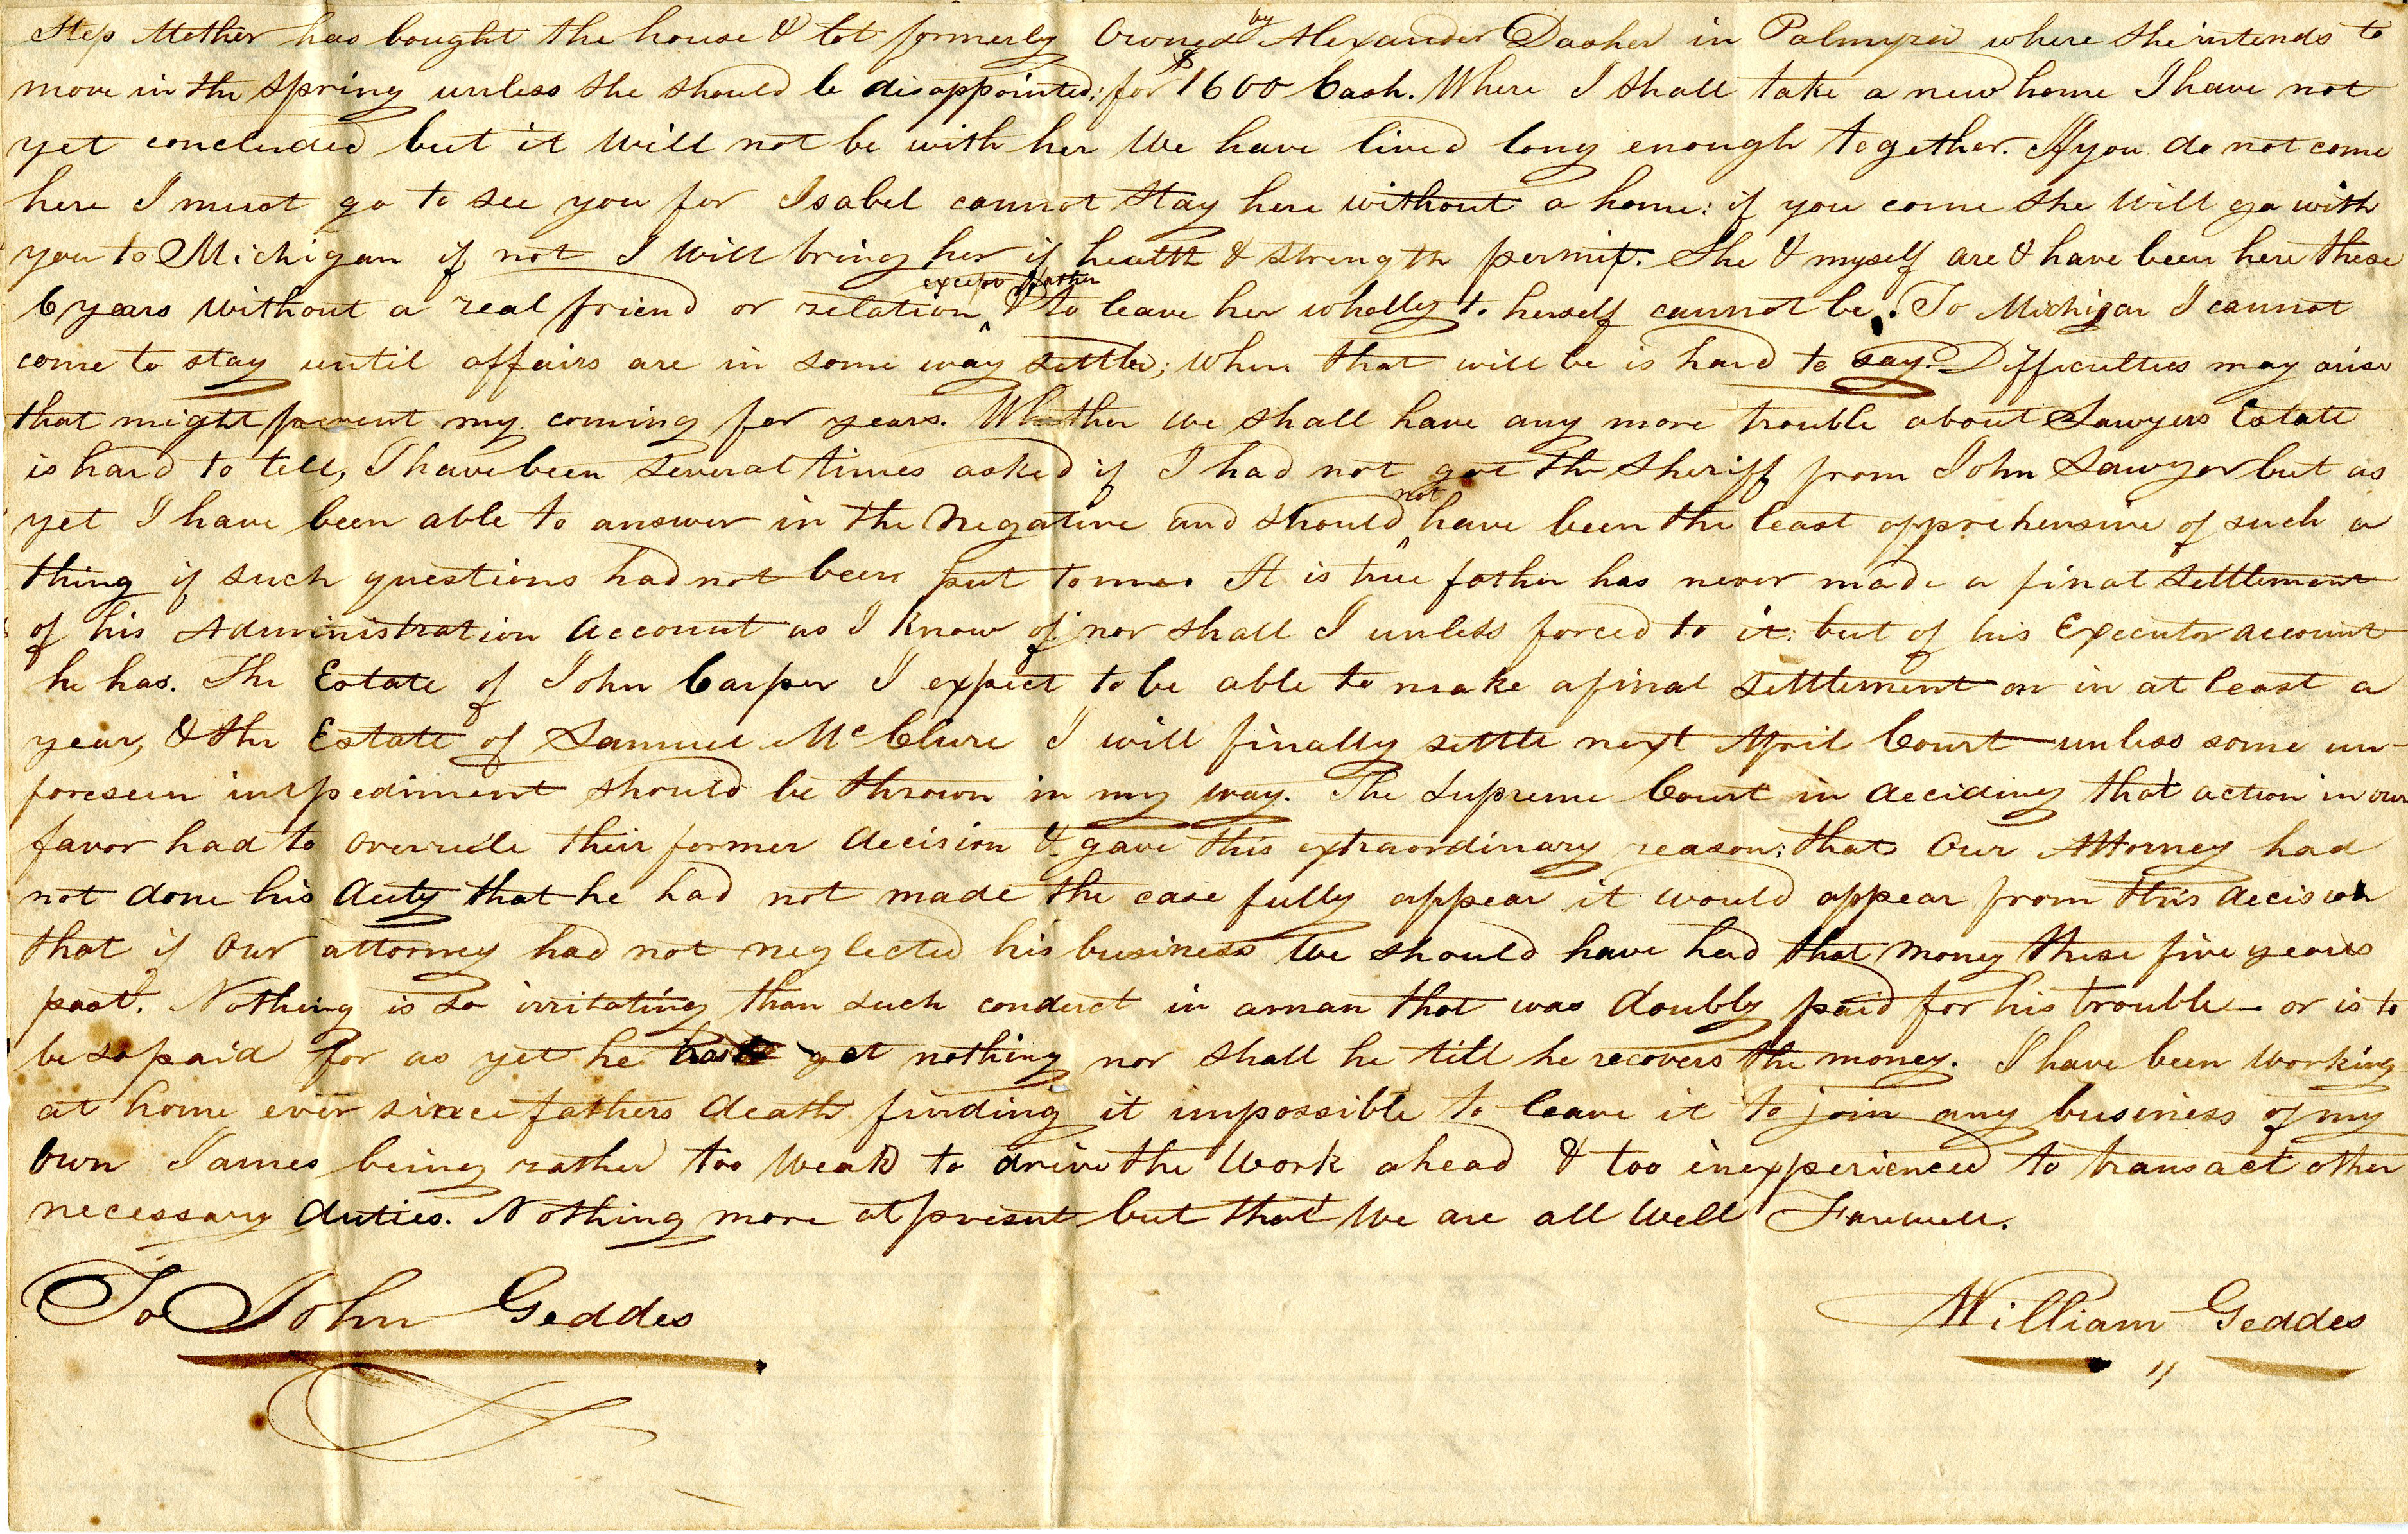 Letter From William Geddes to John Geddes, December 29, 1832 image